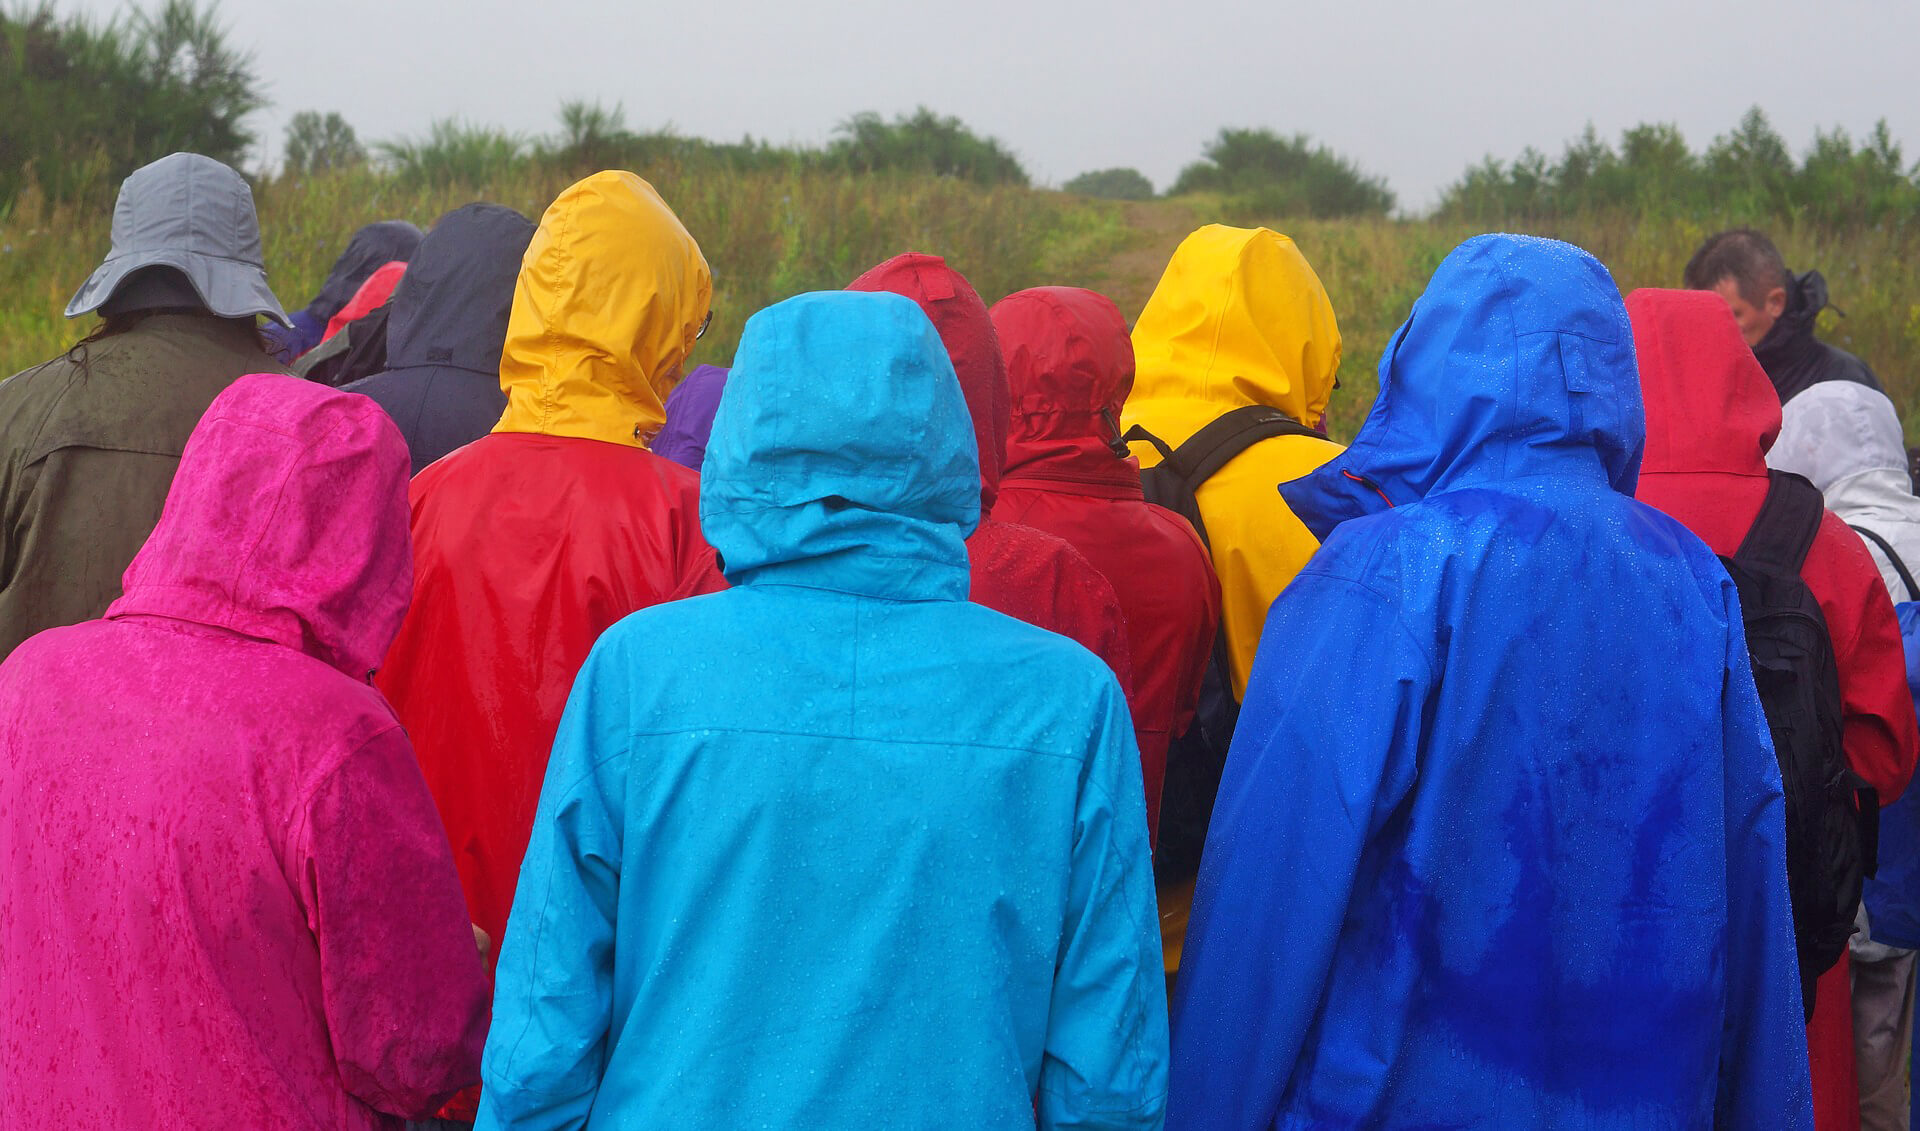 Jackets are a must for your waterproof hiking gear